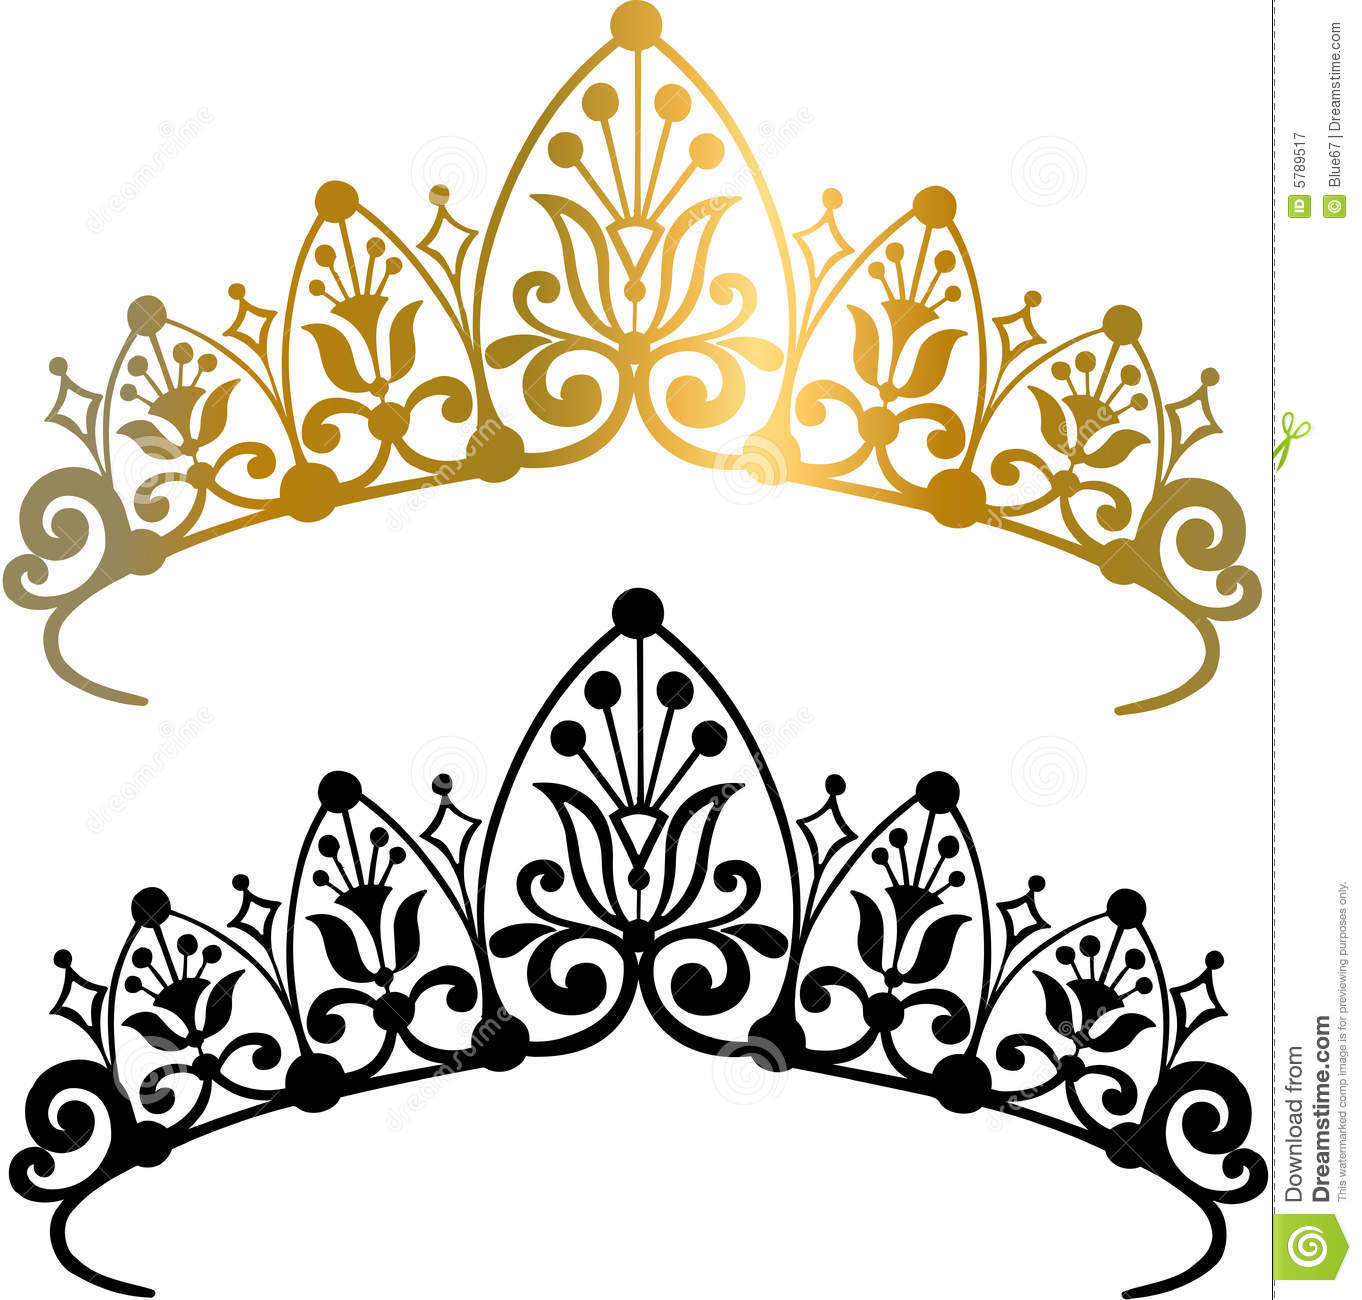 crown clipart vector free - photo #25